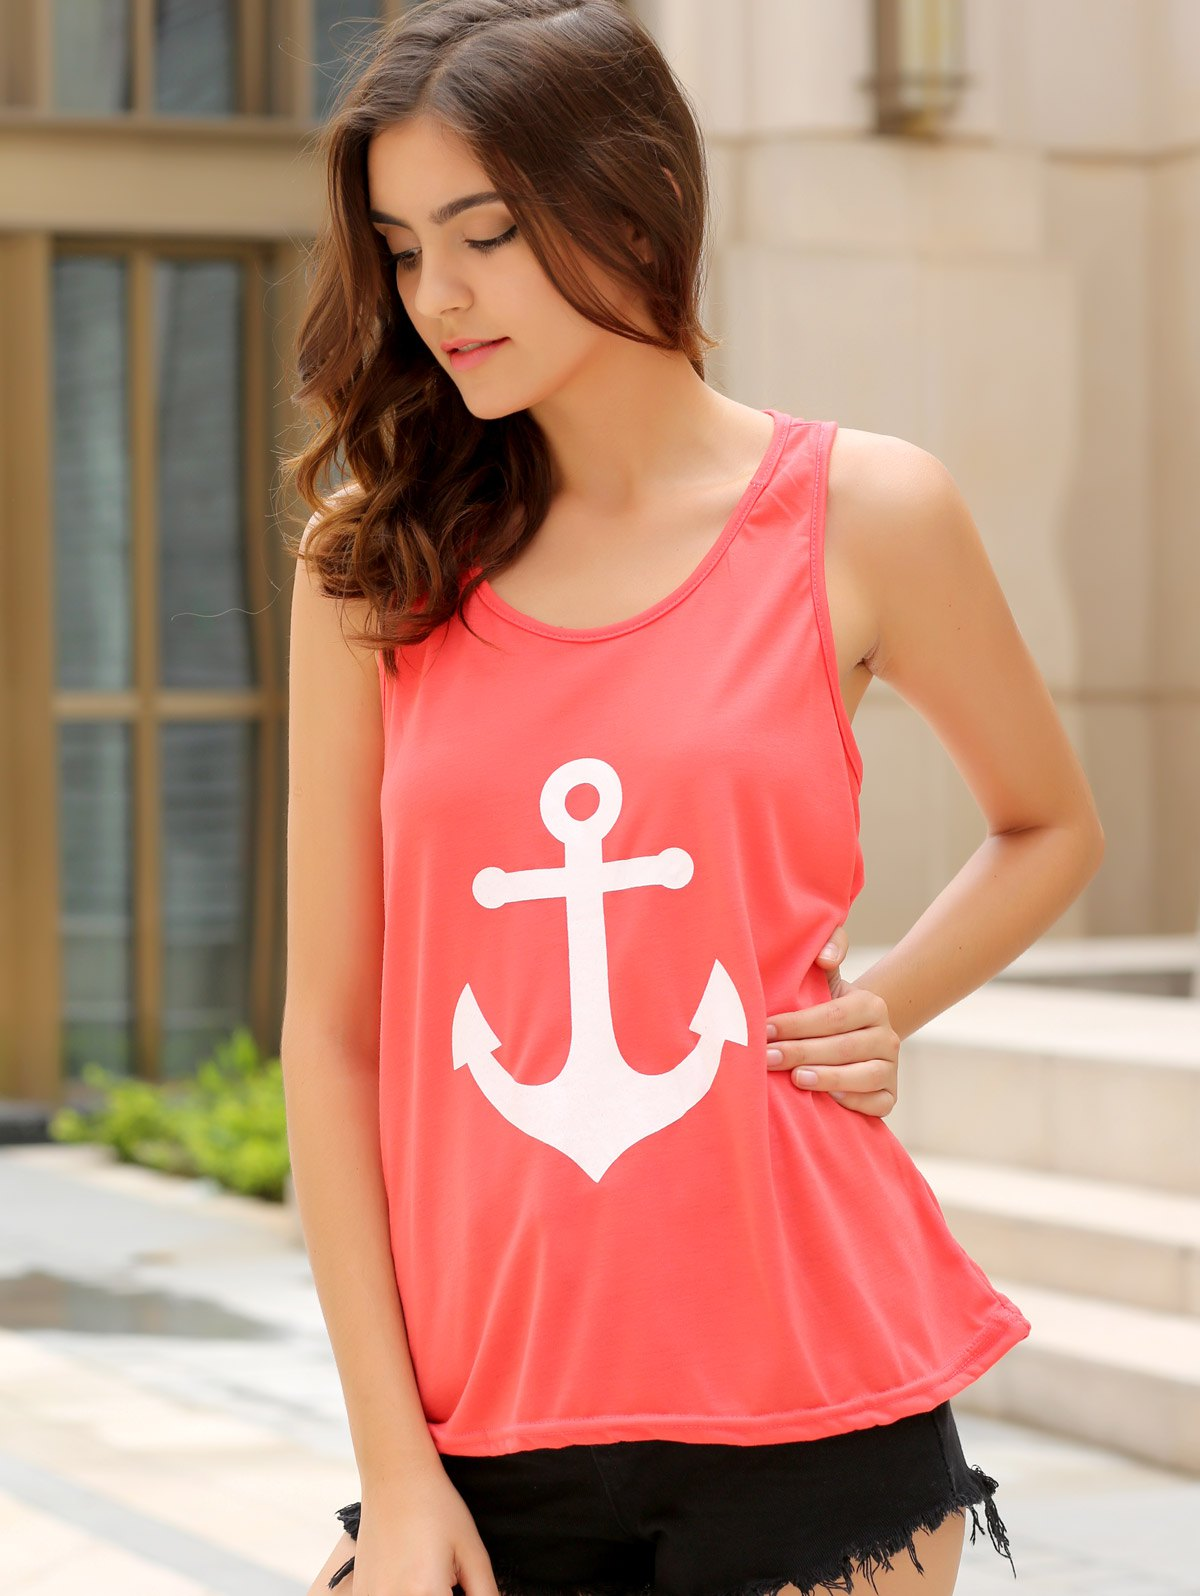 Stylish Scoop Collar Sleeveless Bowknot Design Anchor Print Women's Tank Top - PINK L